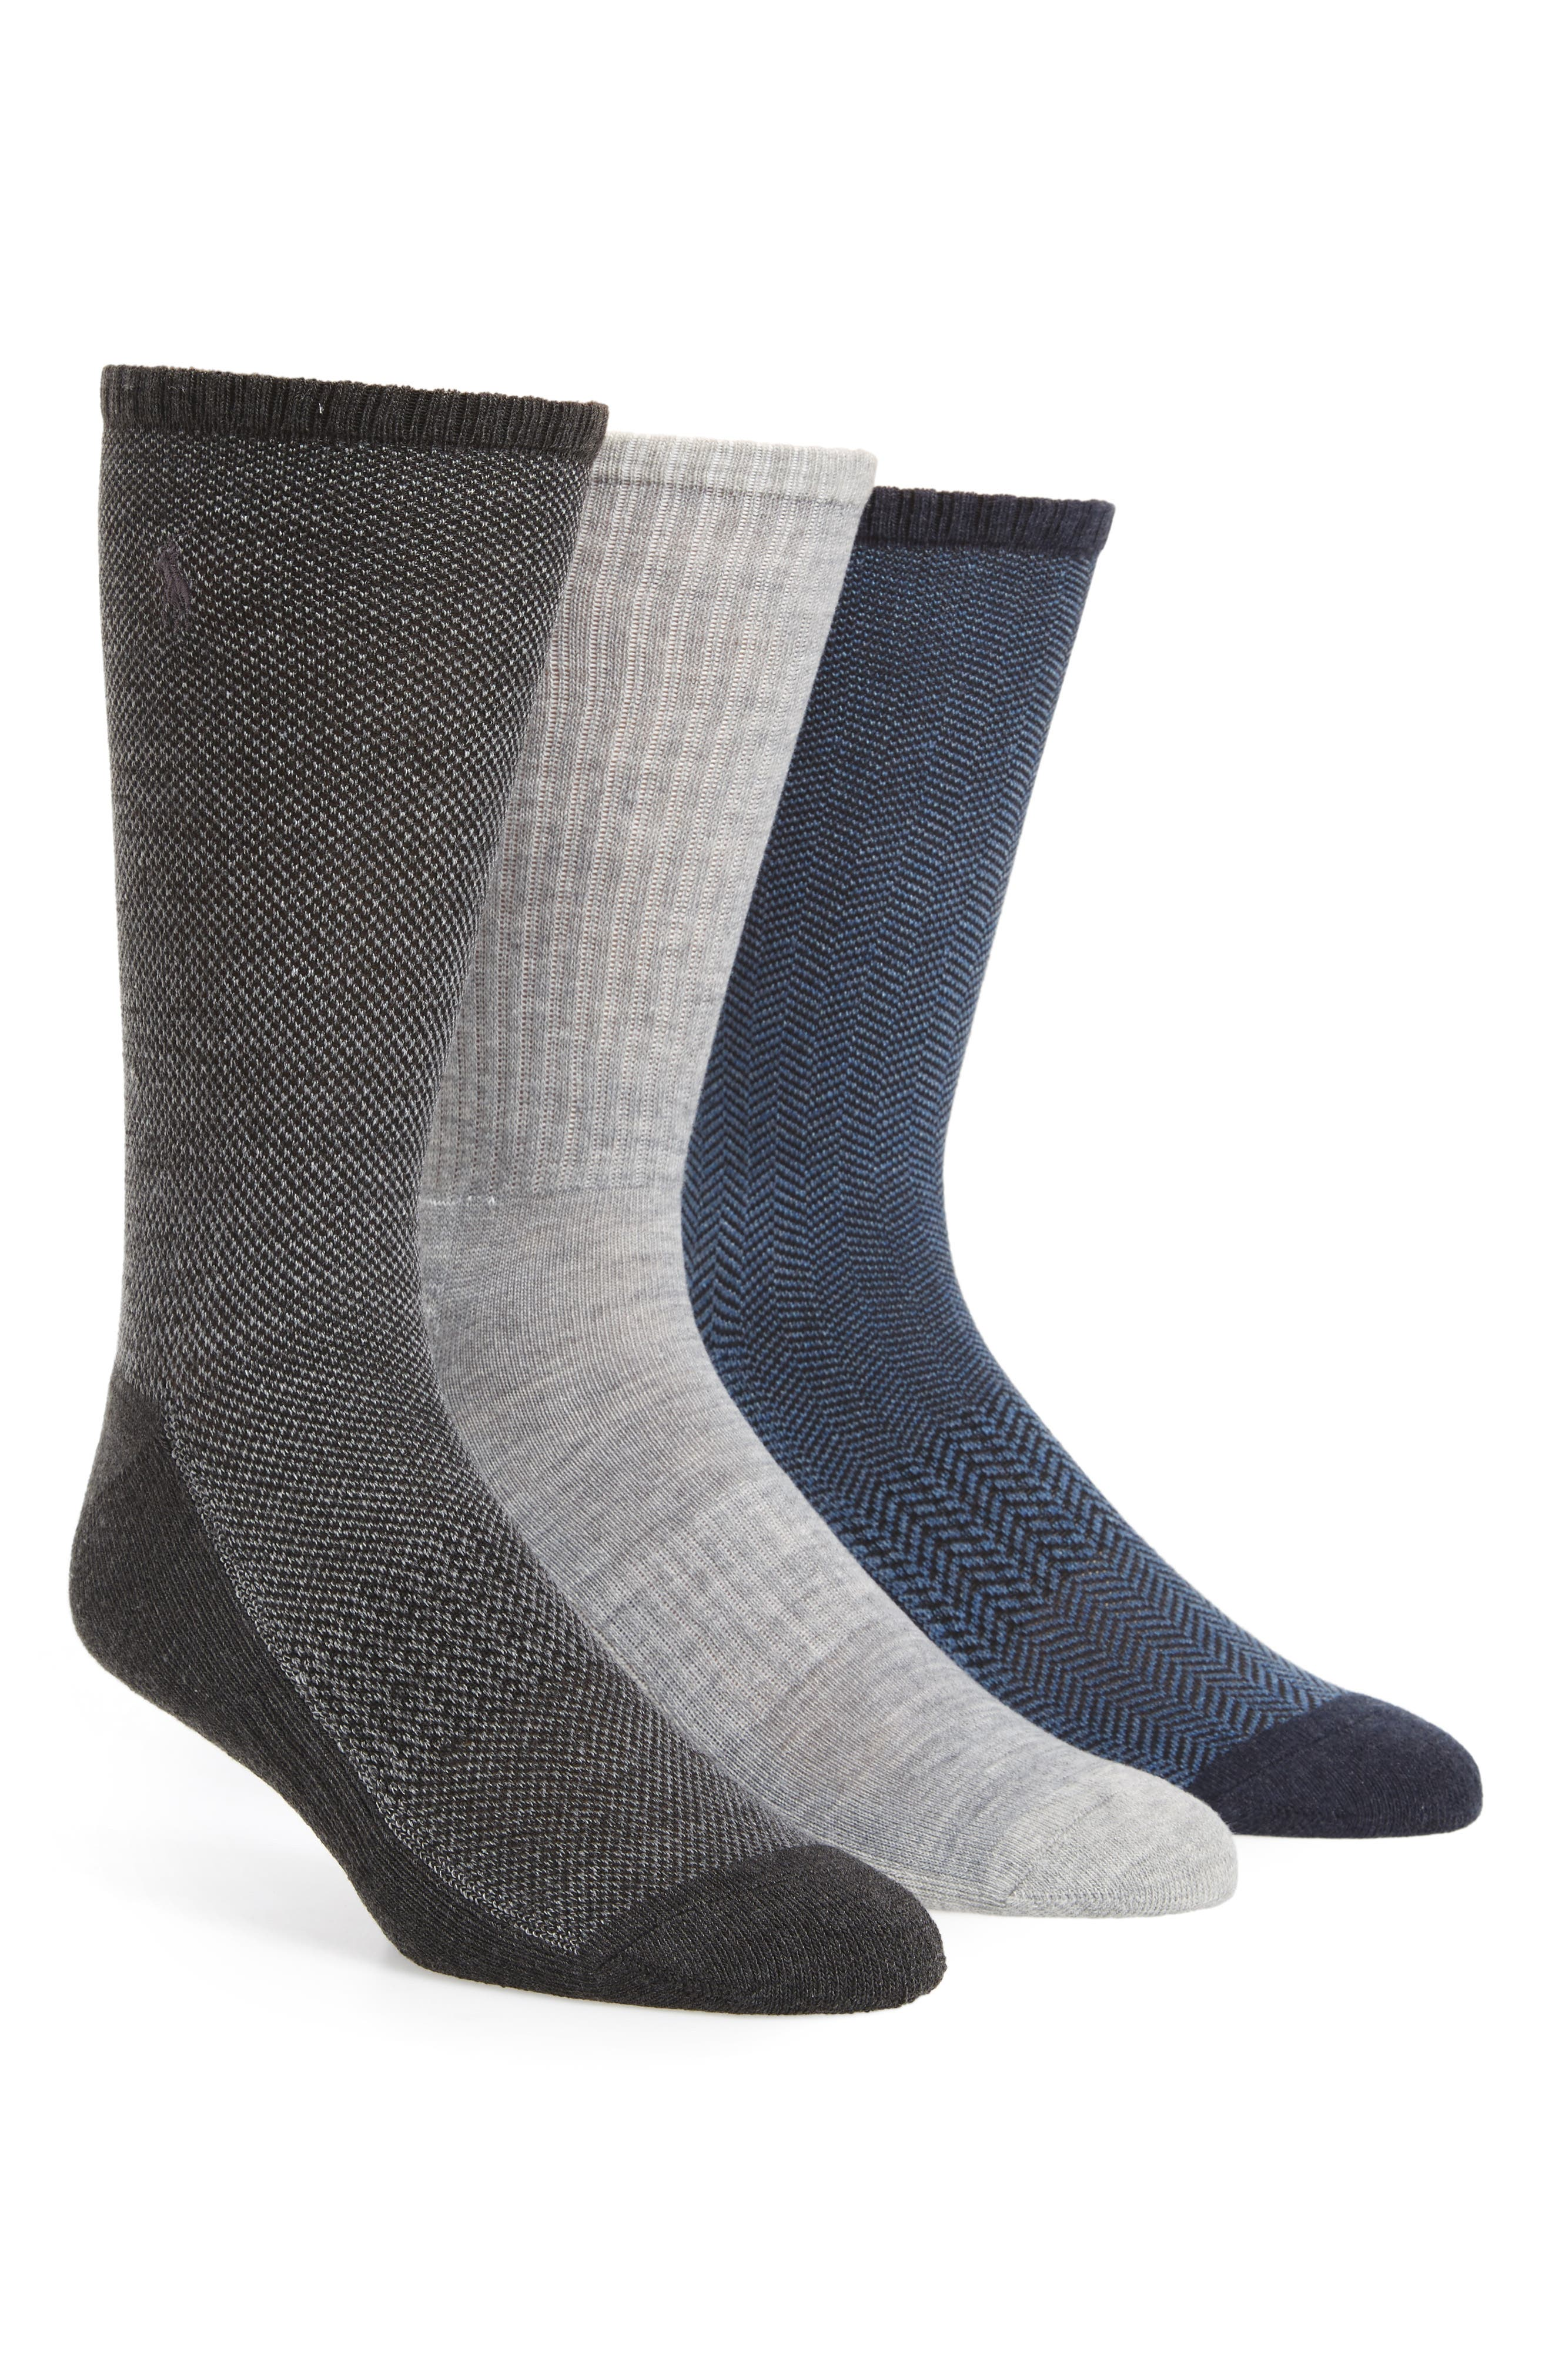 3-Pack Crew Socks,                             Main thumbnail 1, color,                             Charcoal Assorted